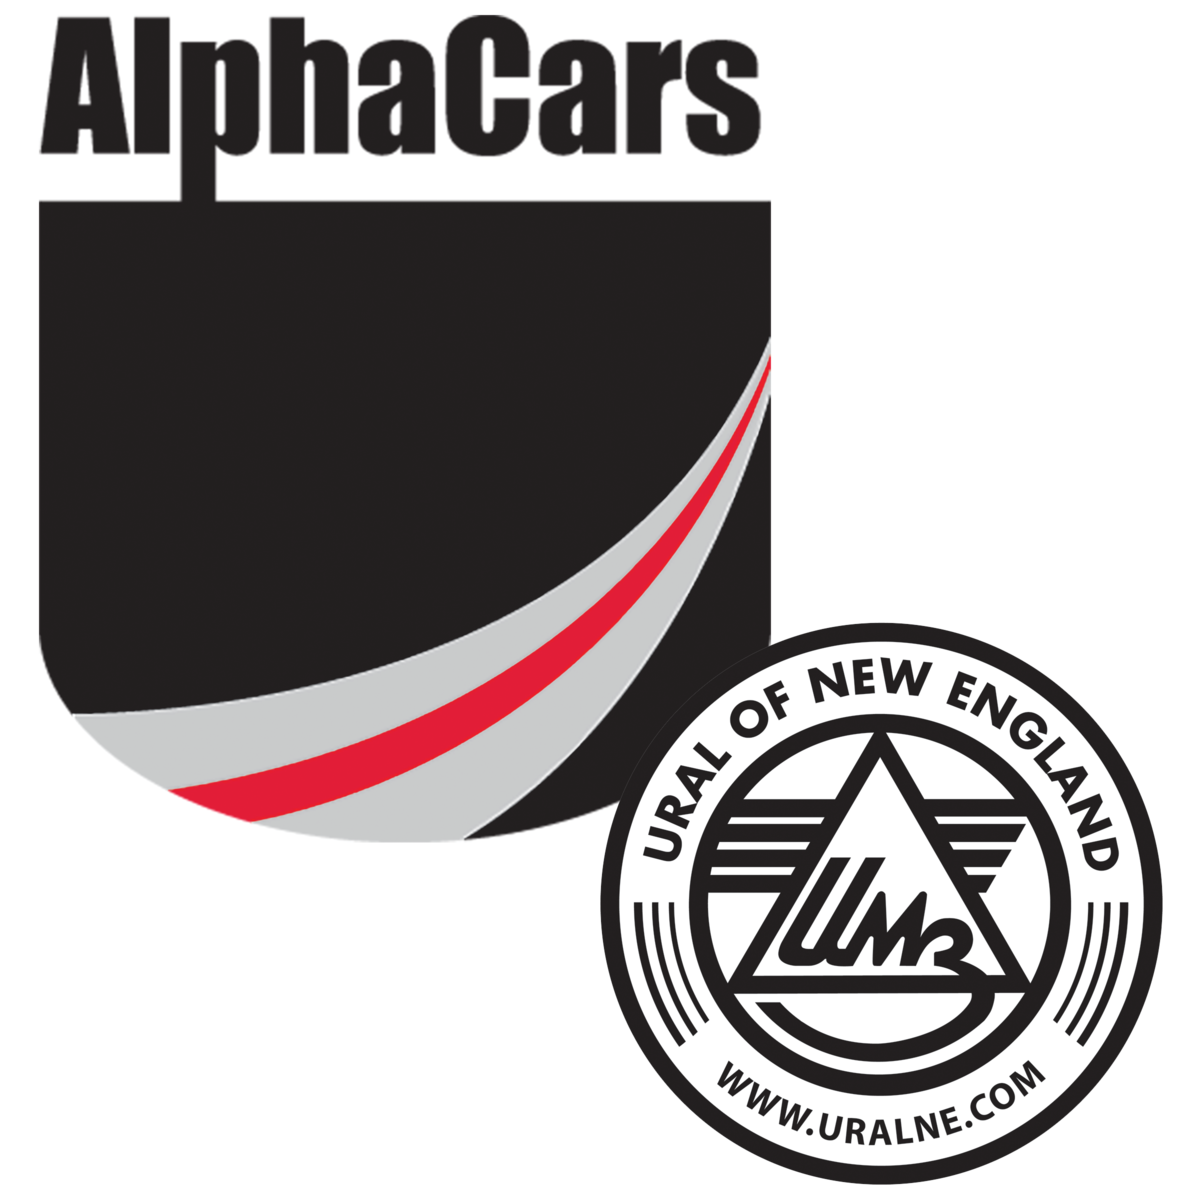 Alphacars Amp Ural Of New England Boxborough Ma Read